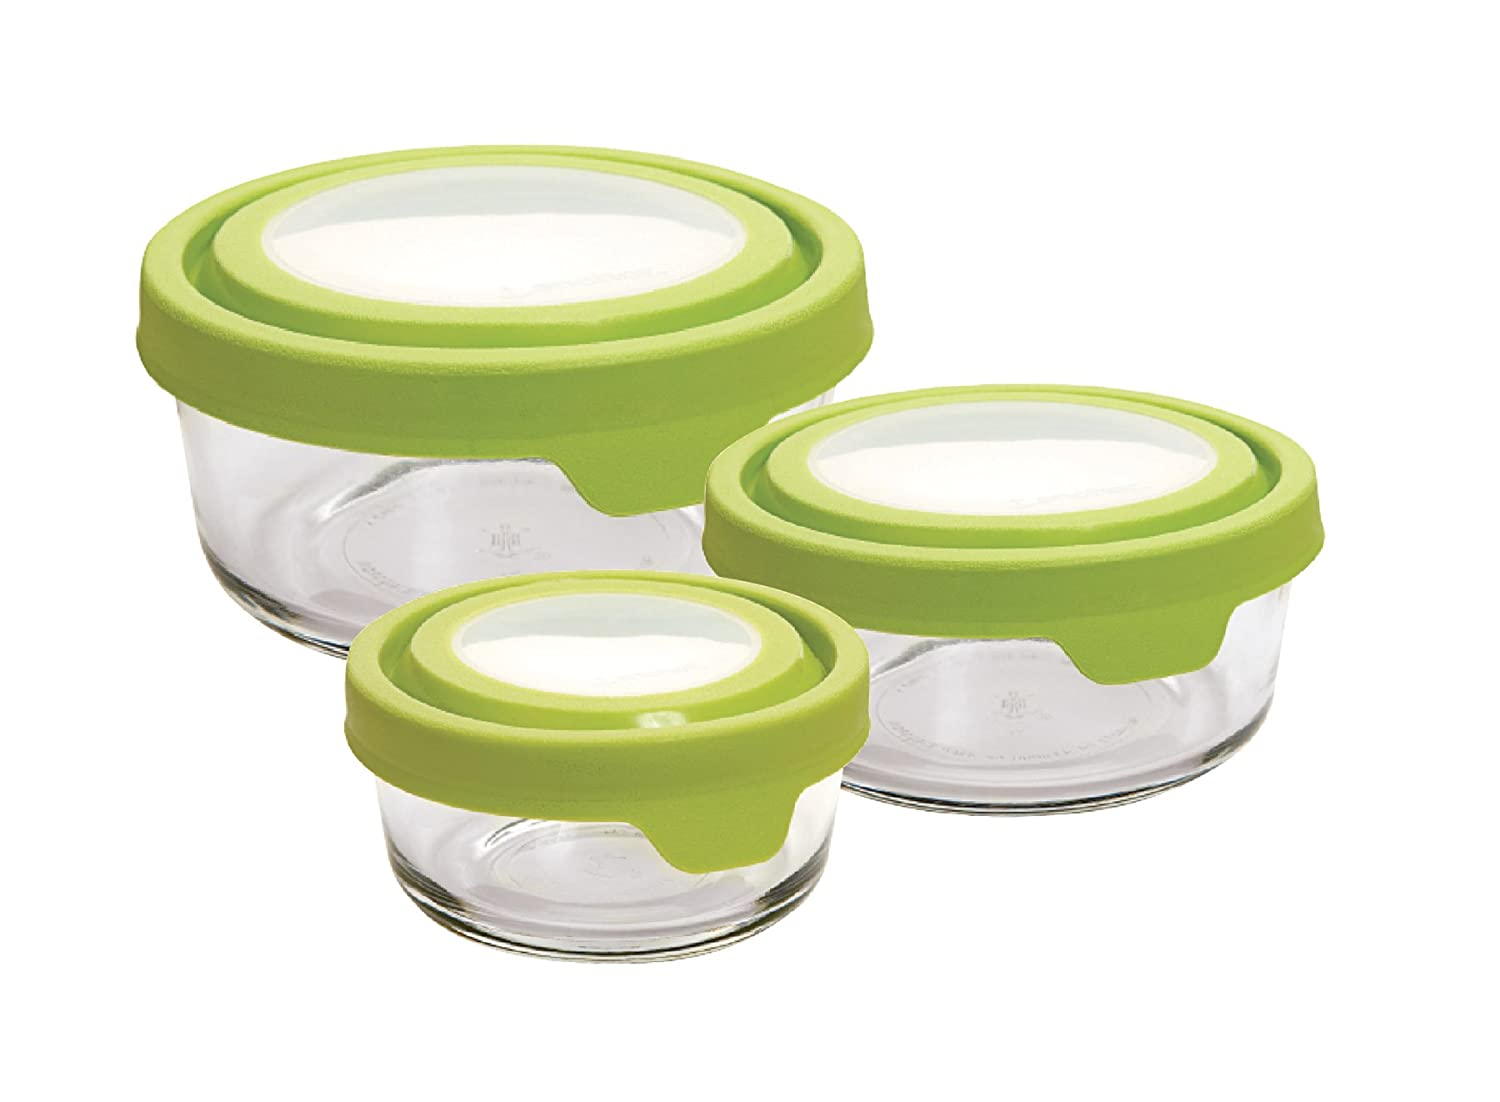 Anchor Hocking TrueSeal Glass Food Storage Containers with Airtight Lids, Green, 6-Piece Round Set